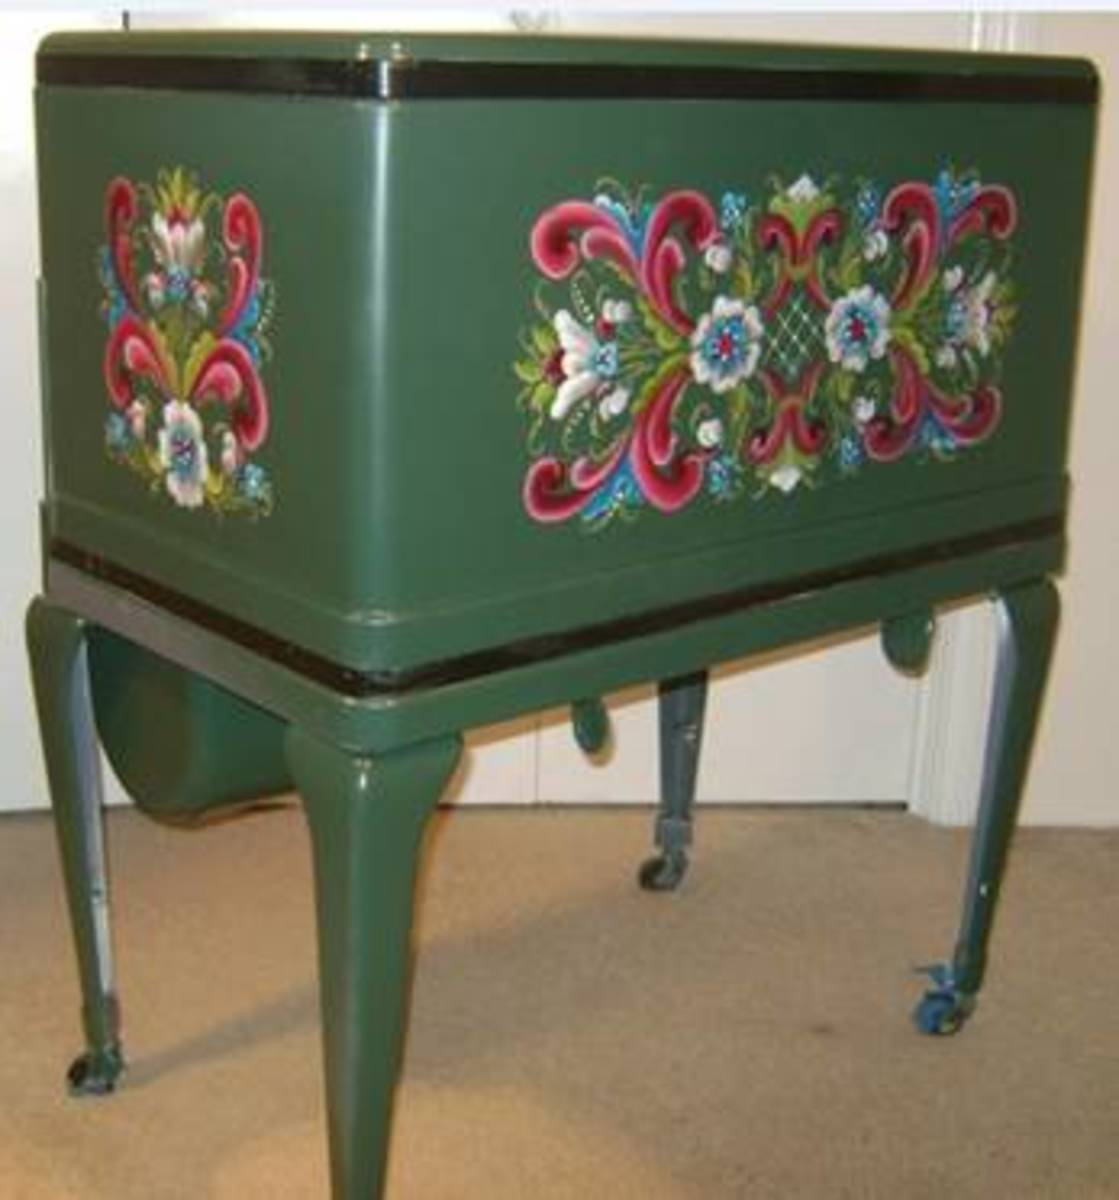 Isn't this beautiful?  A Hub peruser sent this to me .  The art form is called rosemaling, which is a European folk art.